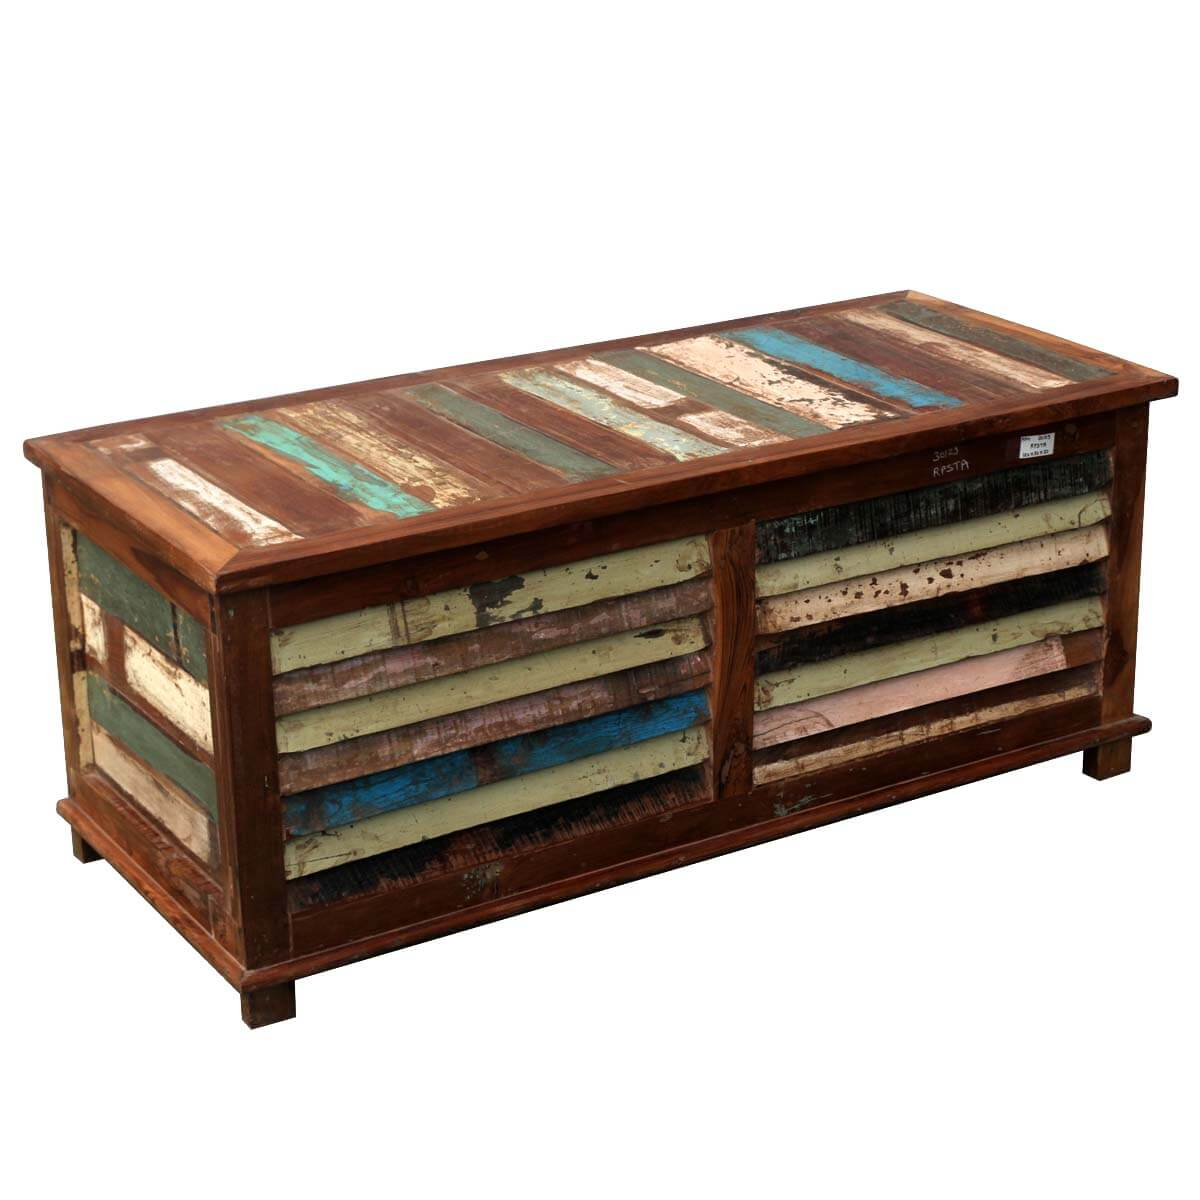 Rustic reclaimed wood multi color coffee table storage trunk chest Coffee table chest with storage